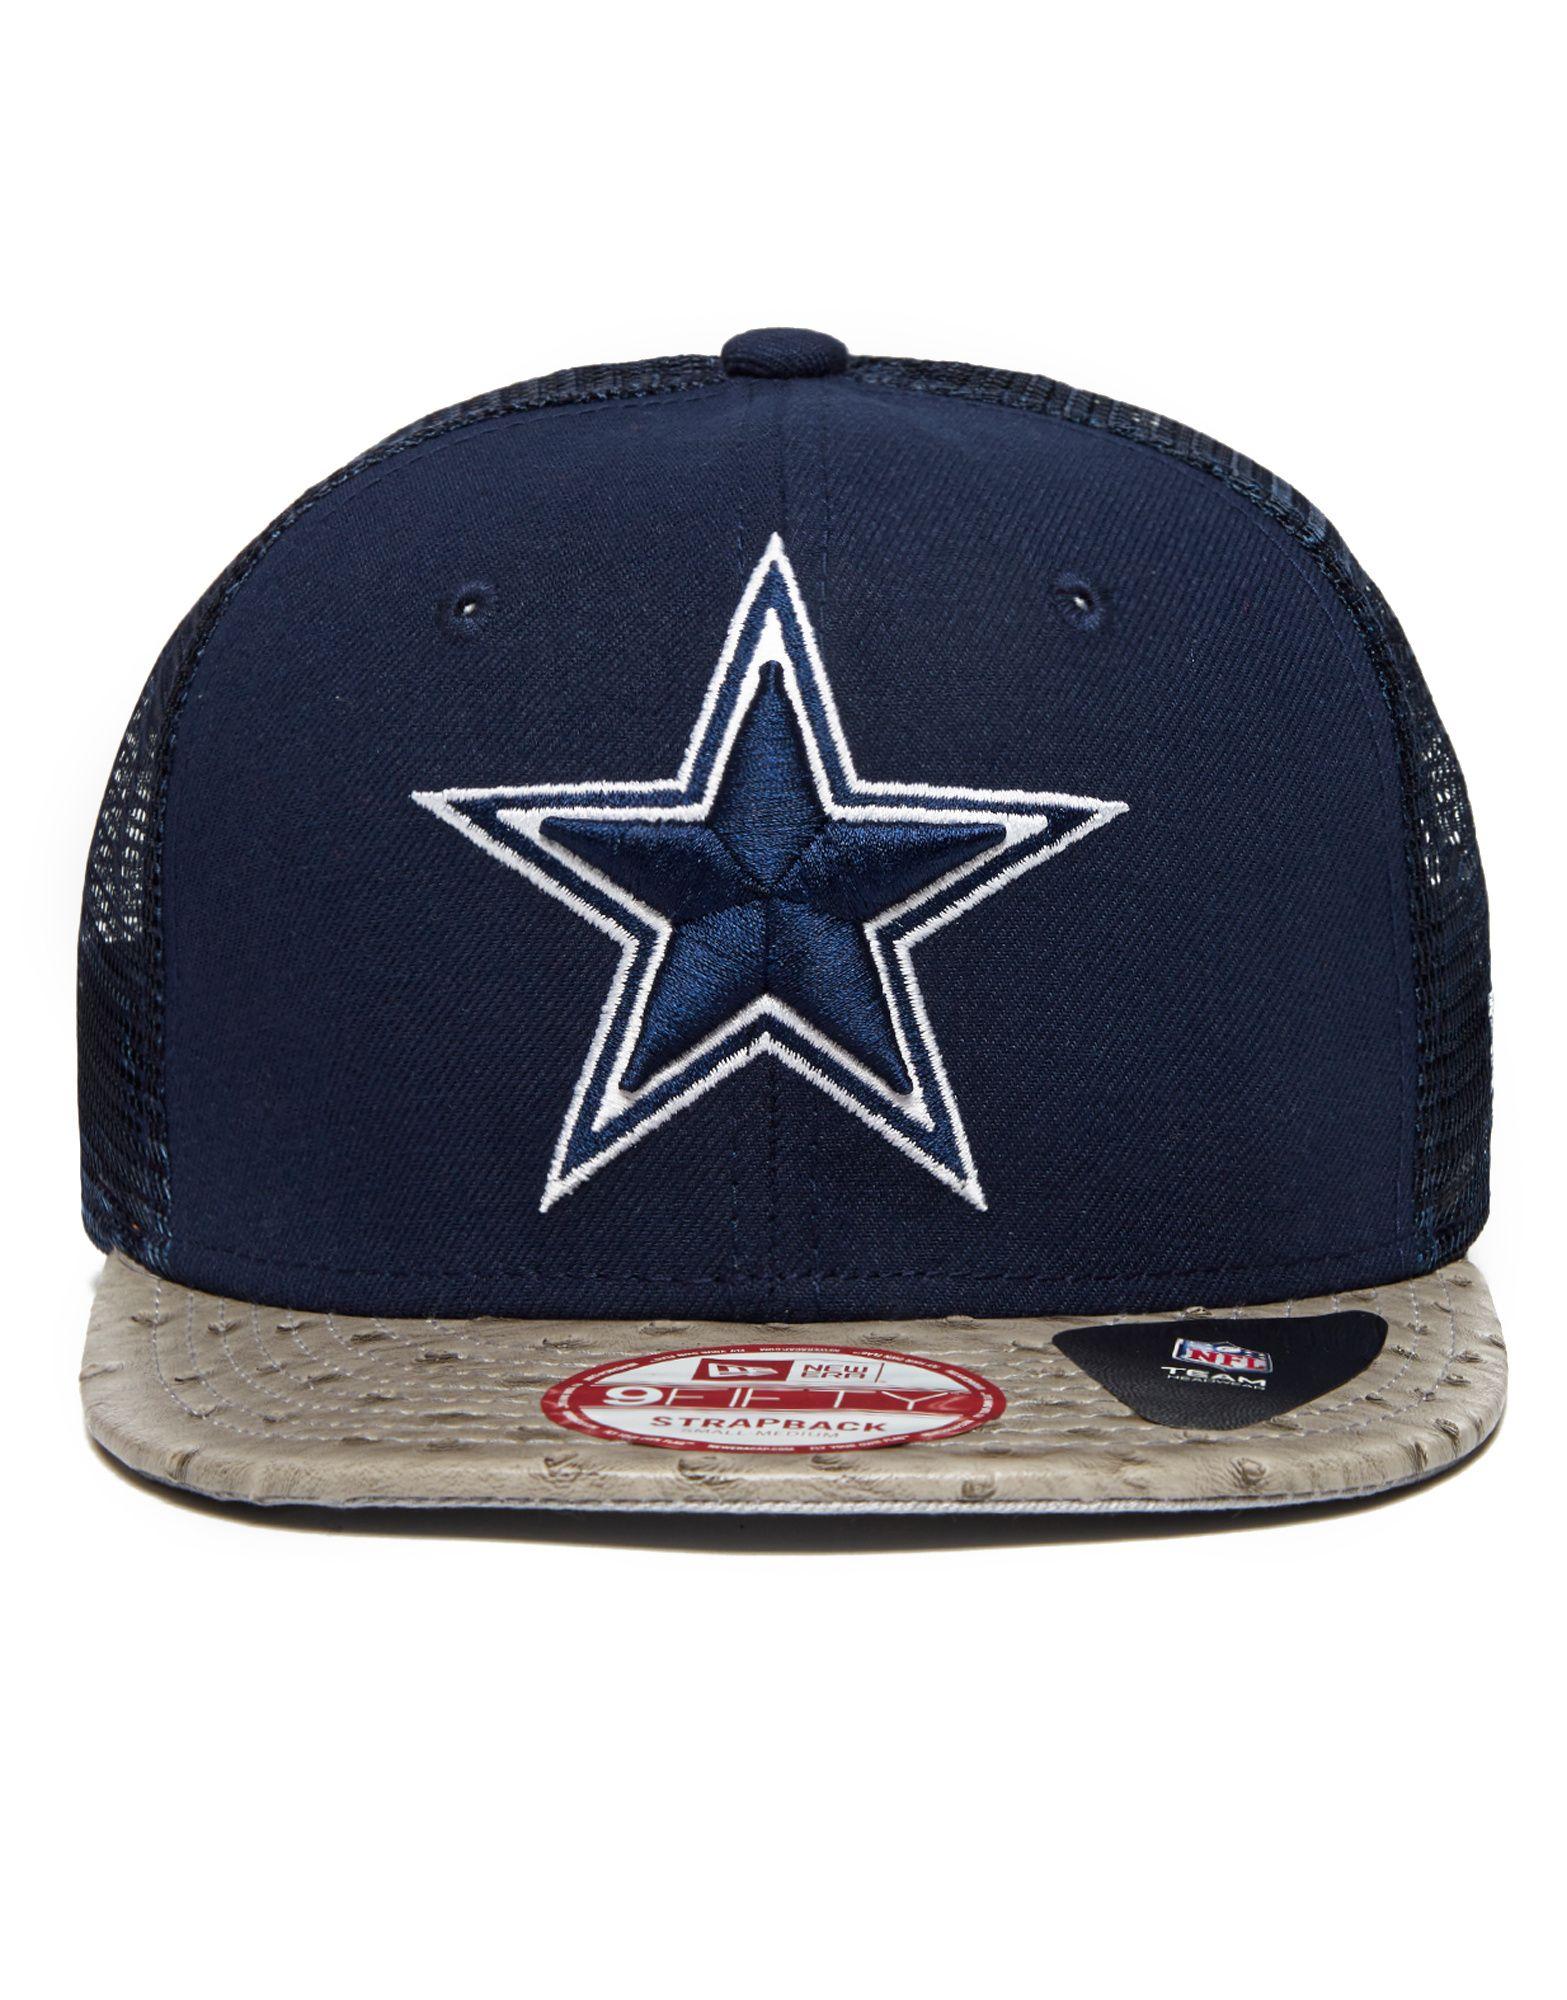 New Era NFL Dallas Cowboys Ostravize 9FIFTY Snapback Cap